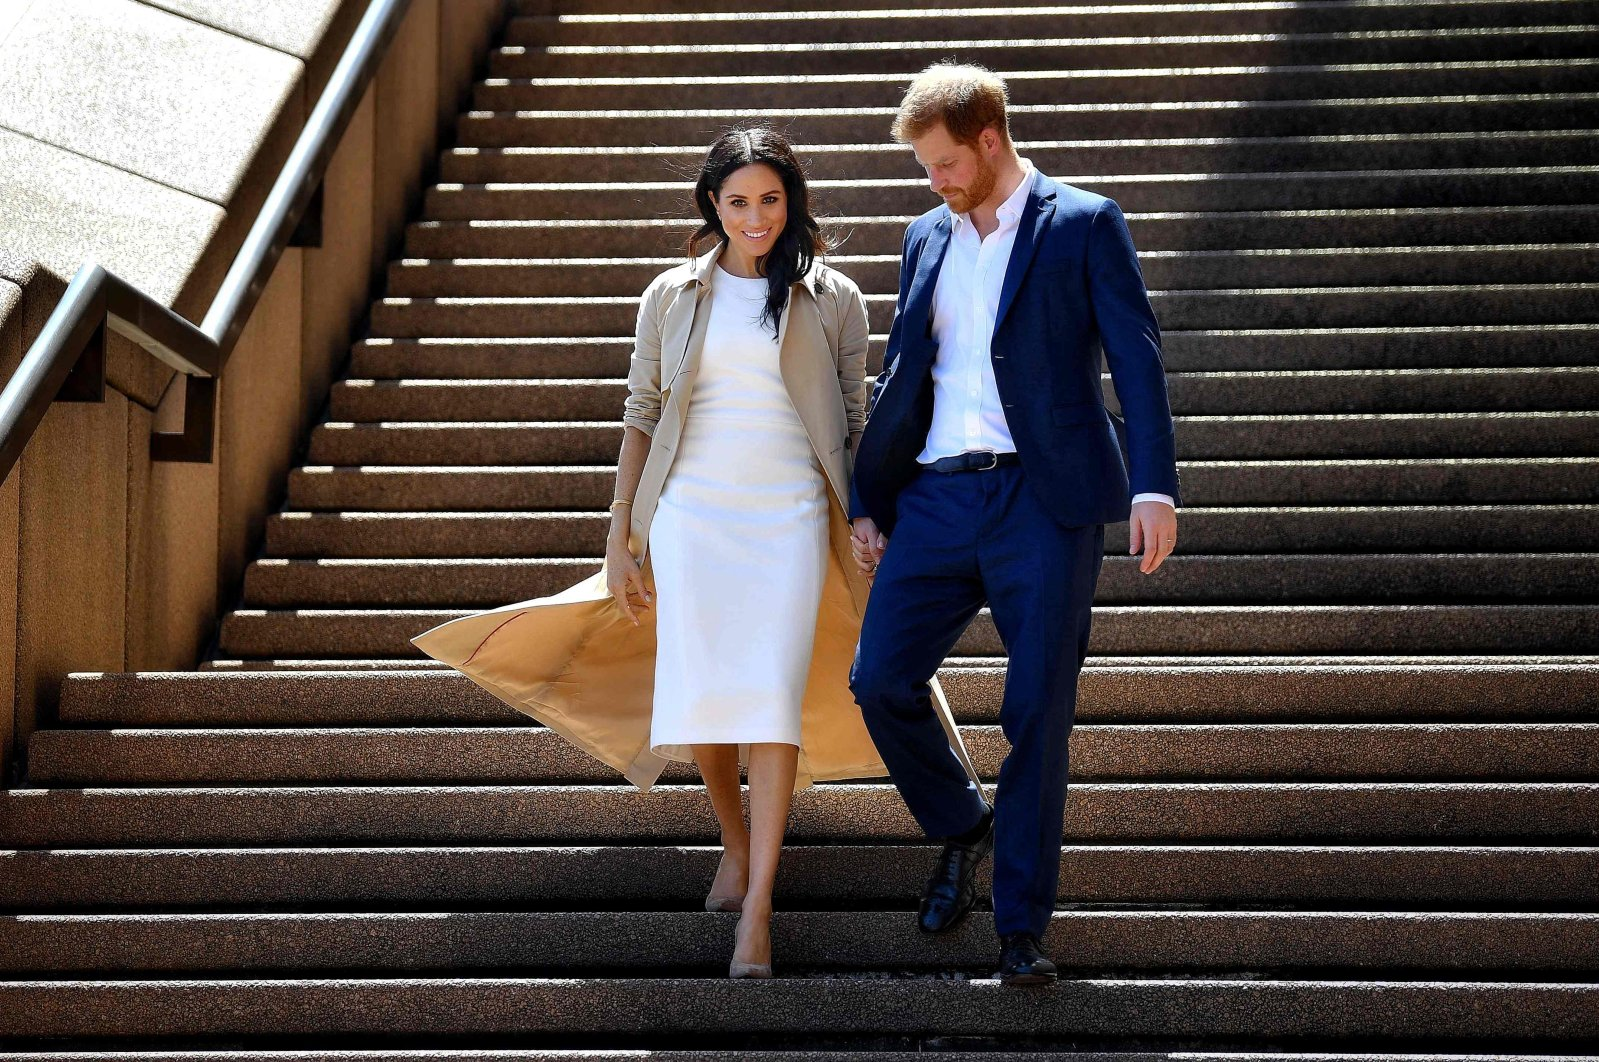 Britain's Prince Harry and his wife Meghan walk down the stairs of the iconic Opera House in Sydney to meet people, Oct. 16, 2018. (AFP File Photo)